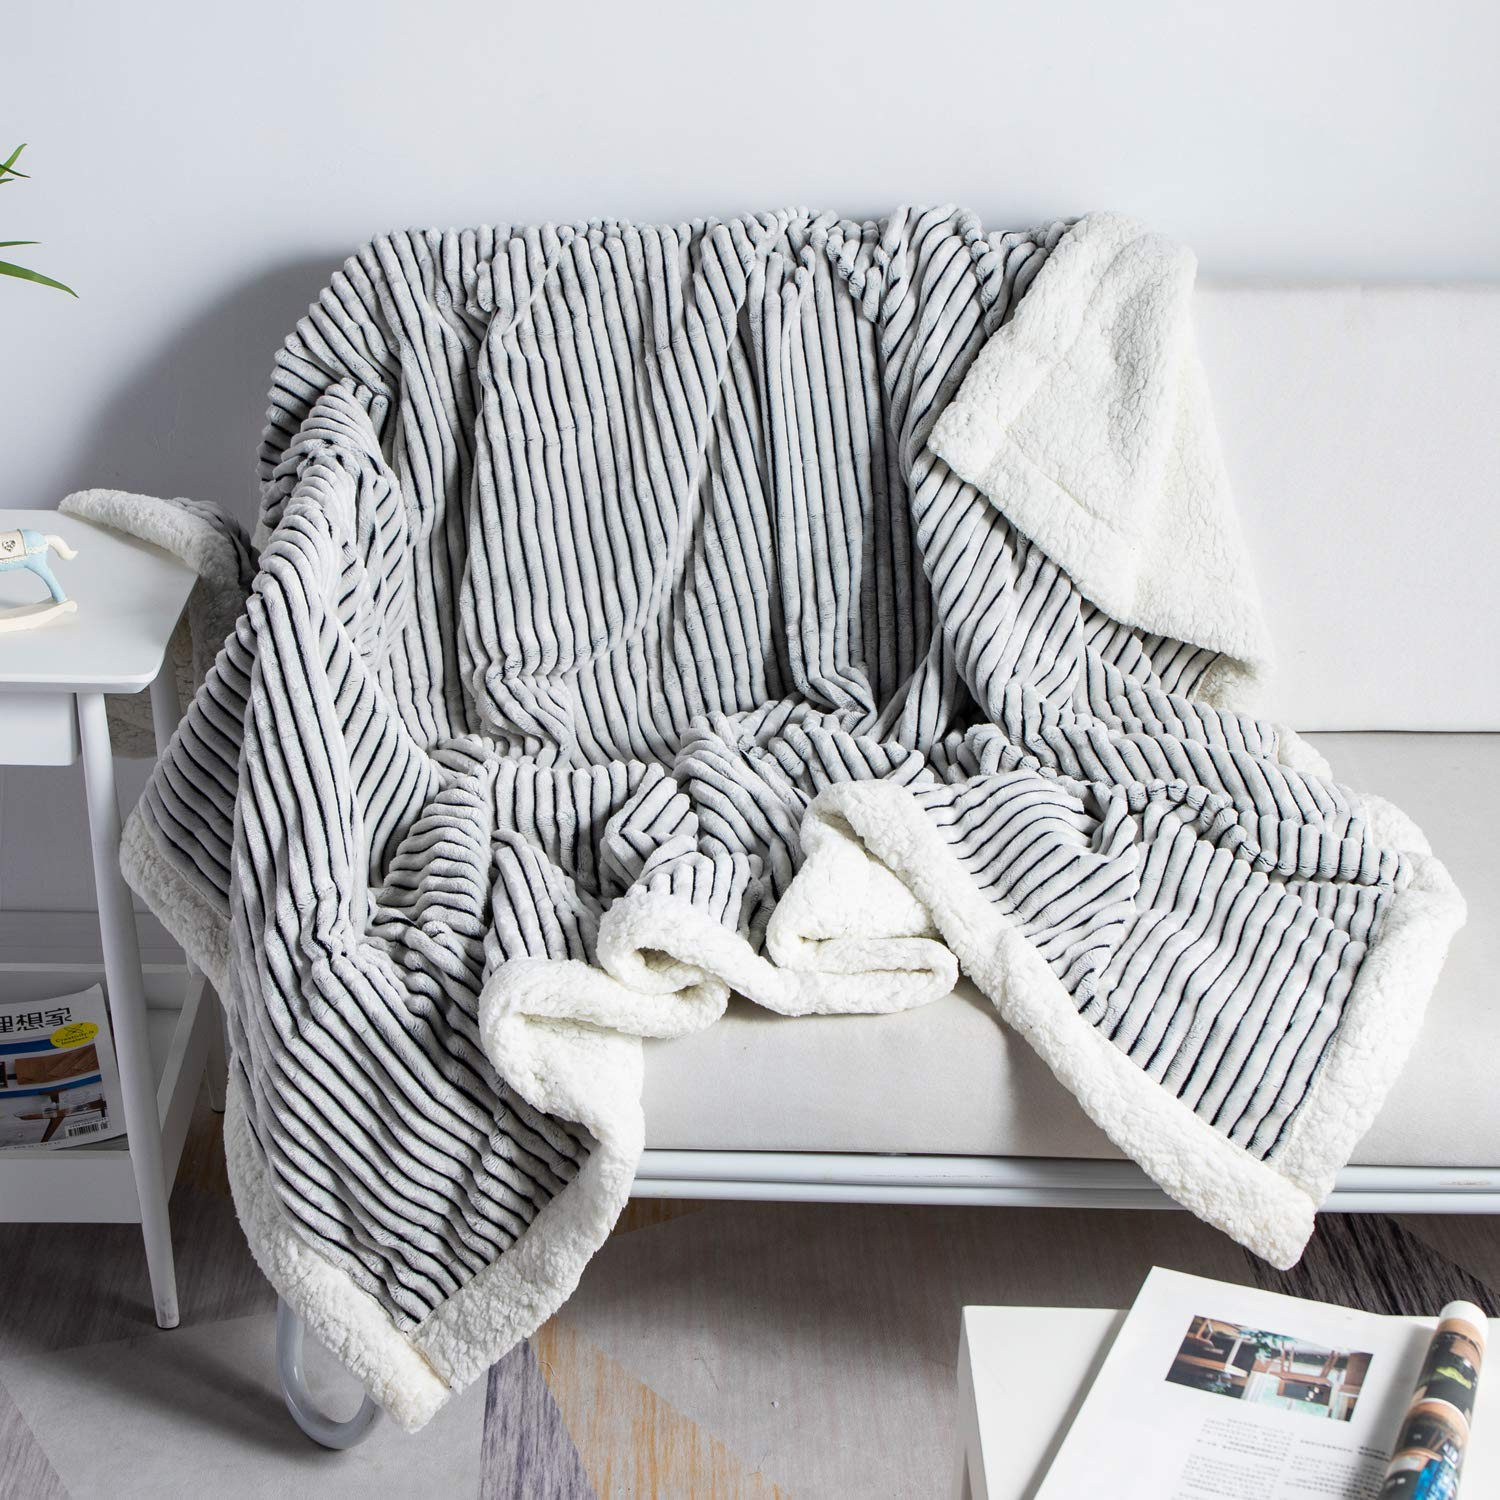 """DISSA Sherpa Fleece Blanket Throw Blanket Soft Blanket Plush Fluffy Blanket Warm Cozy with Black and White Strip Perfect Throw for All Seasons for Couch Bed Sofa (Black, 51"""" x63'')"""